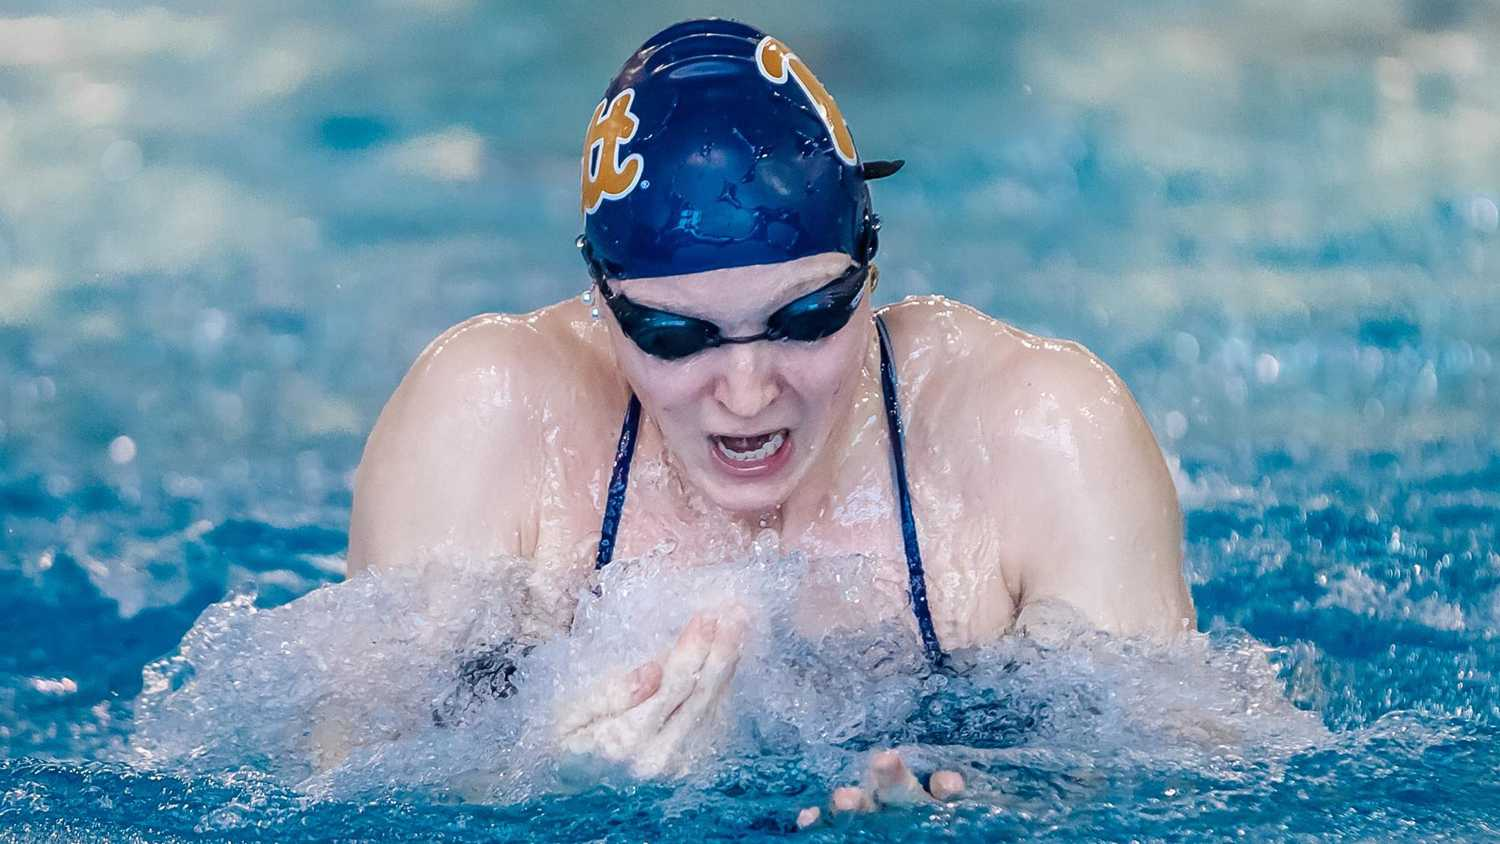 Senior swimmer Lina Rathsack Rathsack finished 23rd in the 200-yard breaststroke preliminary with a time of 1:00.17. (Photo courtesy of Pitt Athletics)